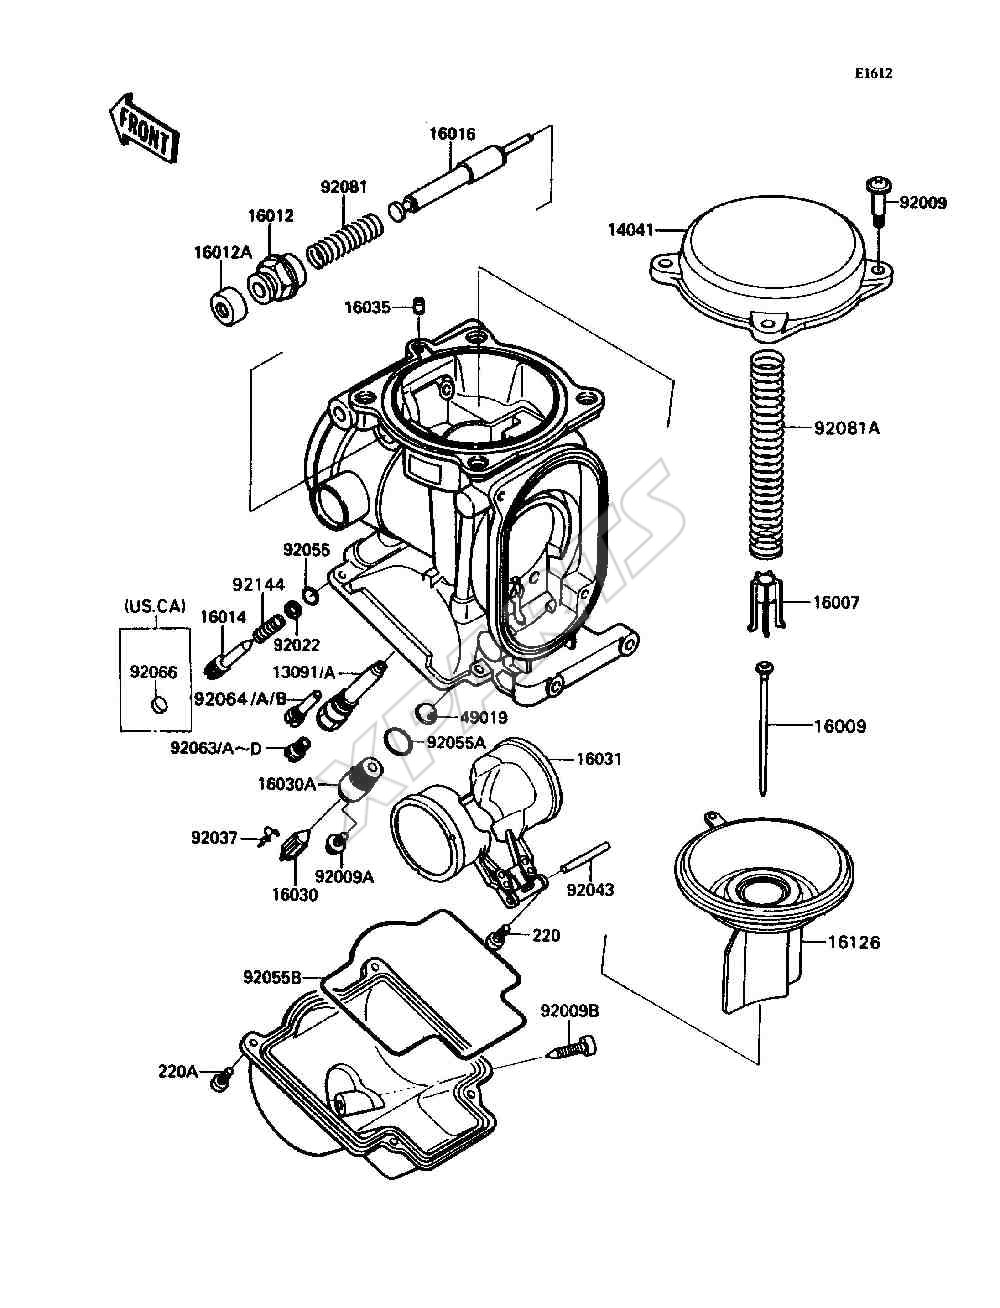 hight resolution of suzuki gs450 bobber wiring diagram 14 1981 suzuki gs450 bobber 1980 bobber